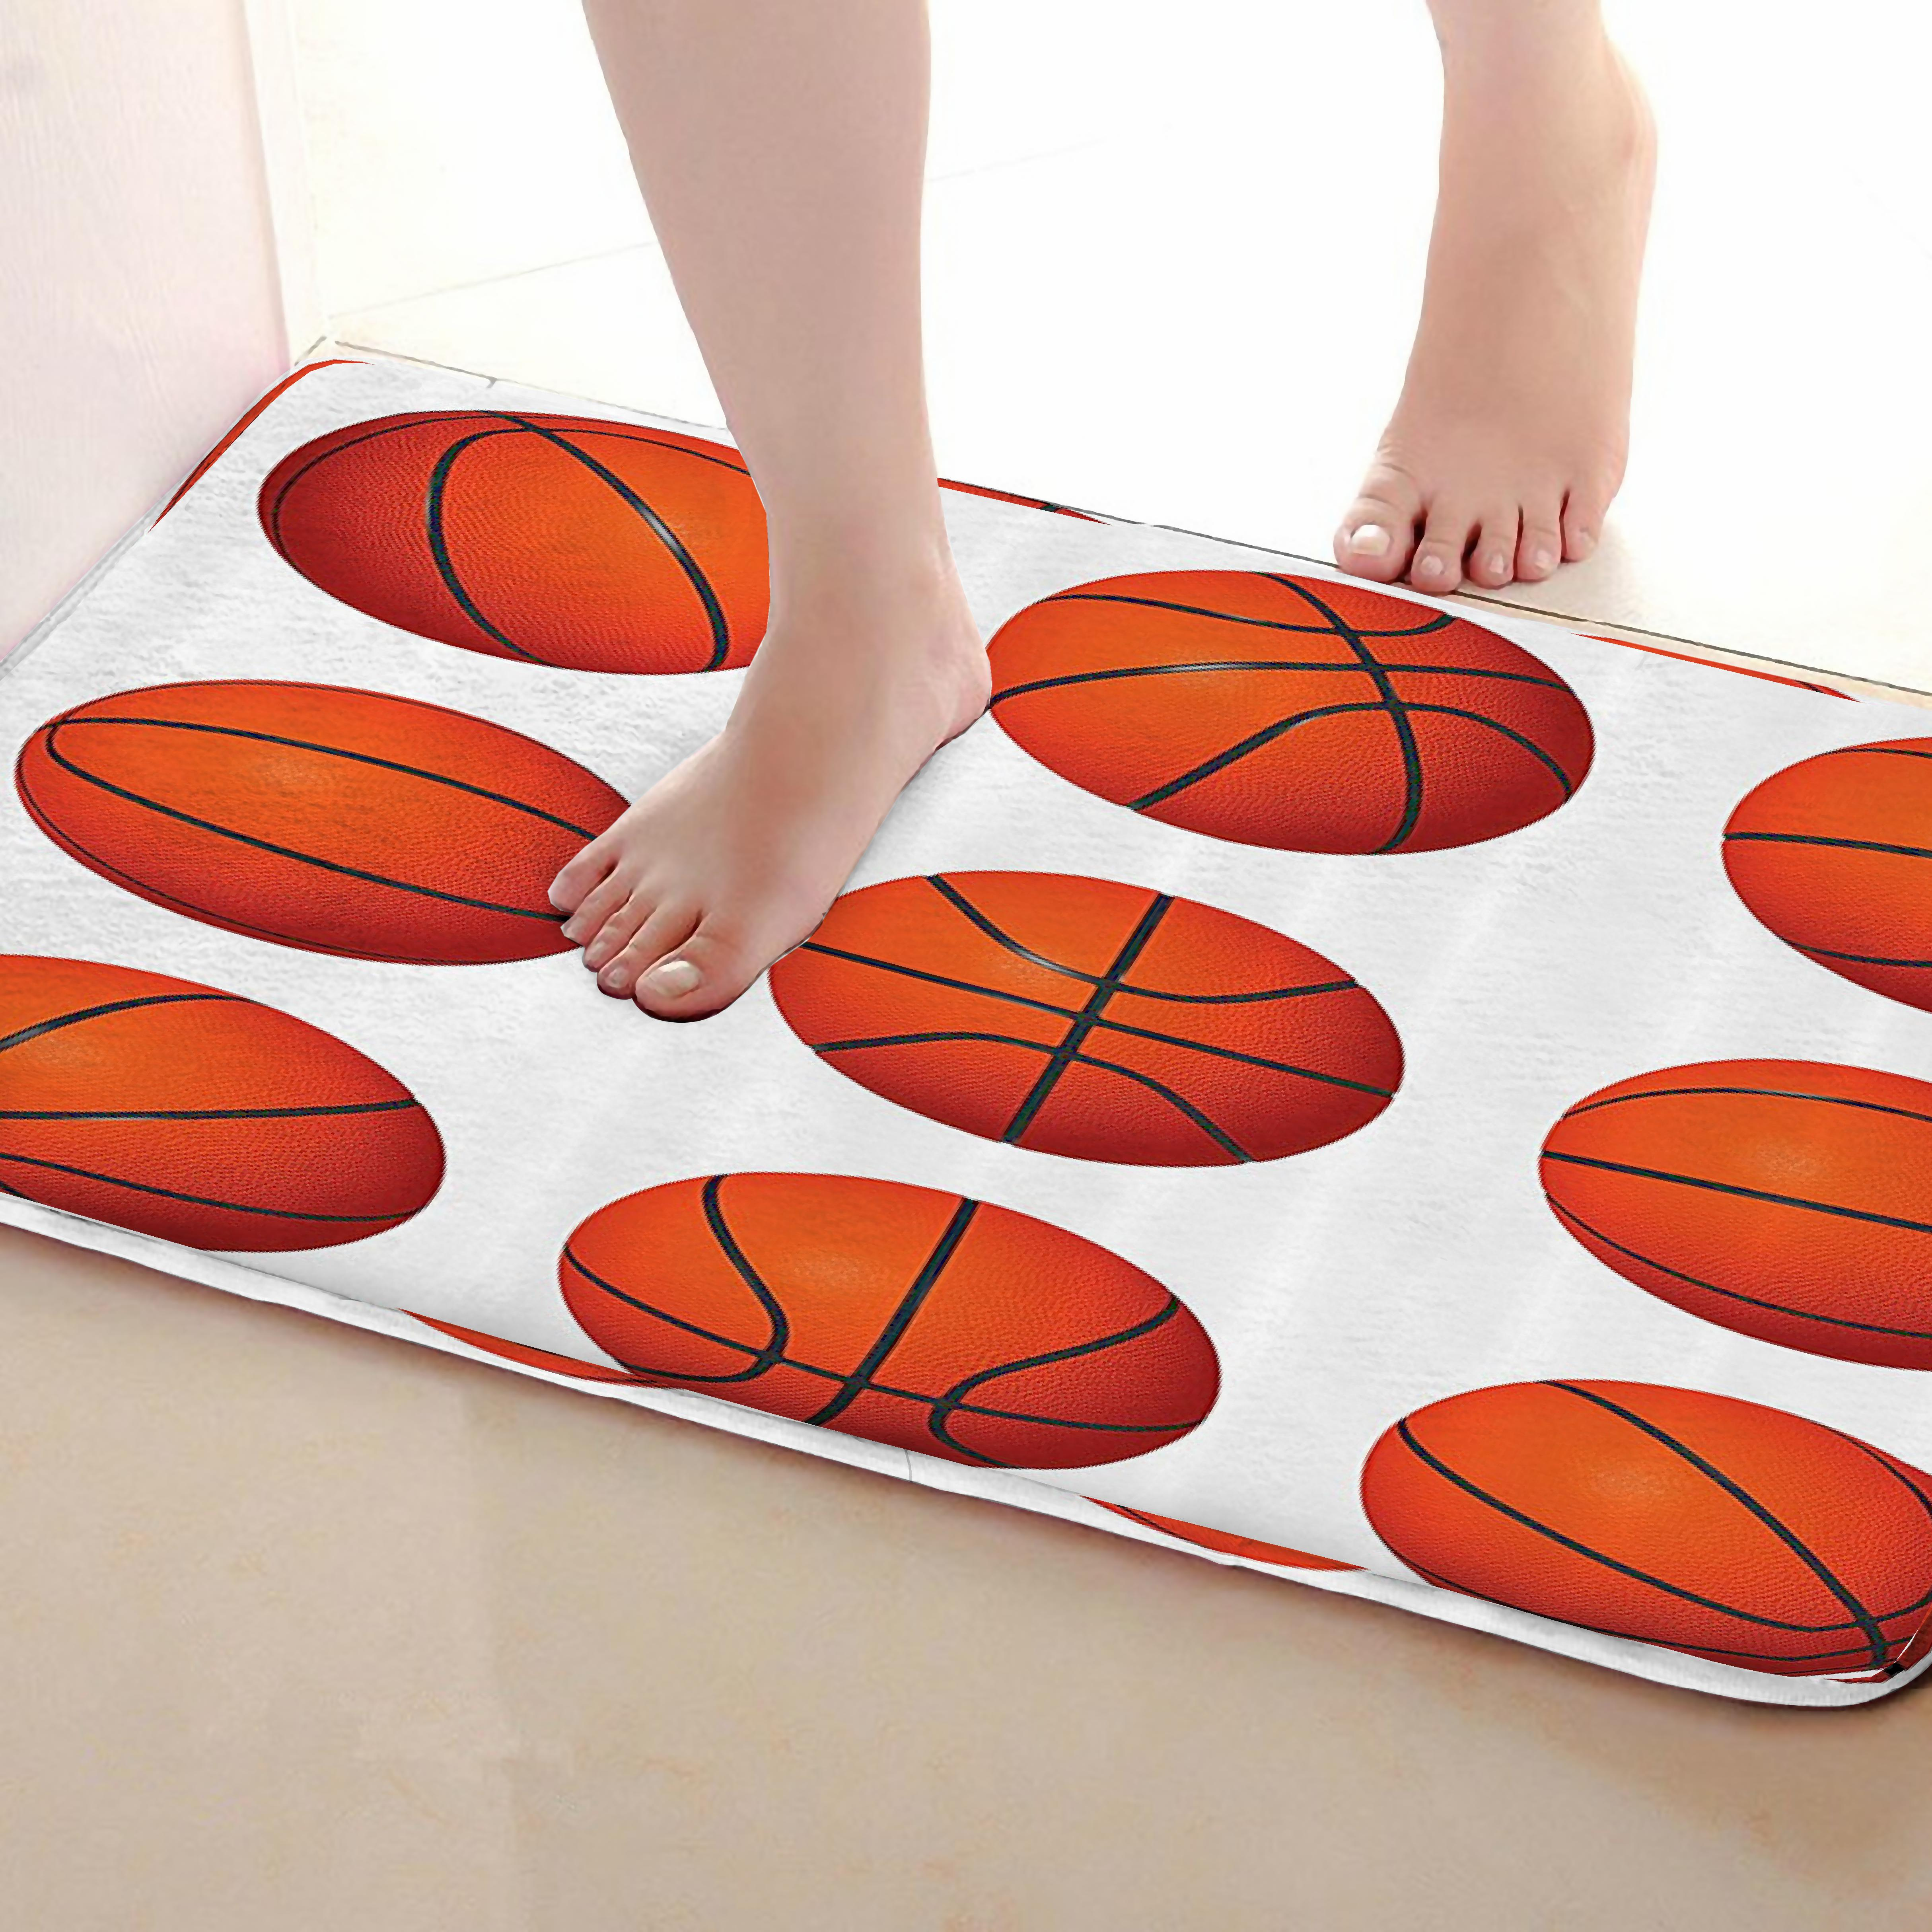 Basketball Style Bathroom Mat,Funny Anti Skid Bath Mat,Shower Curtains Accessories,Matching Your Shower Curtain